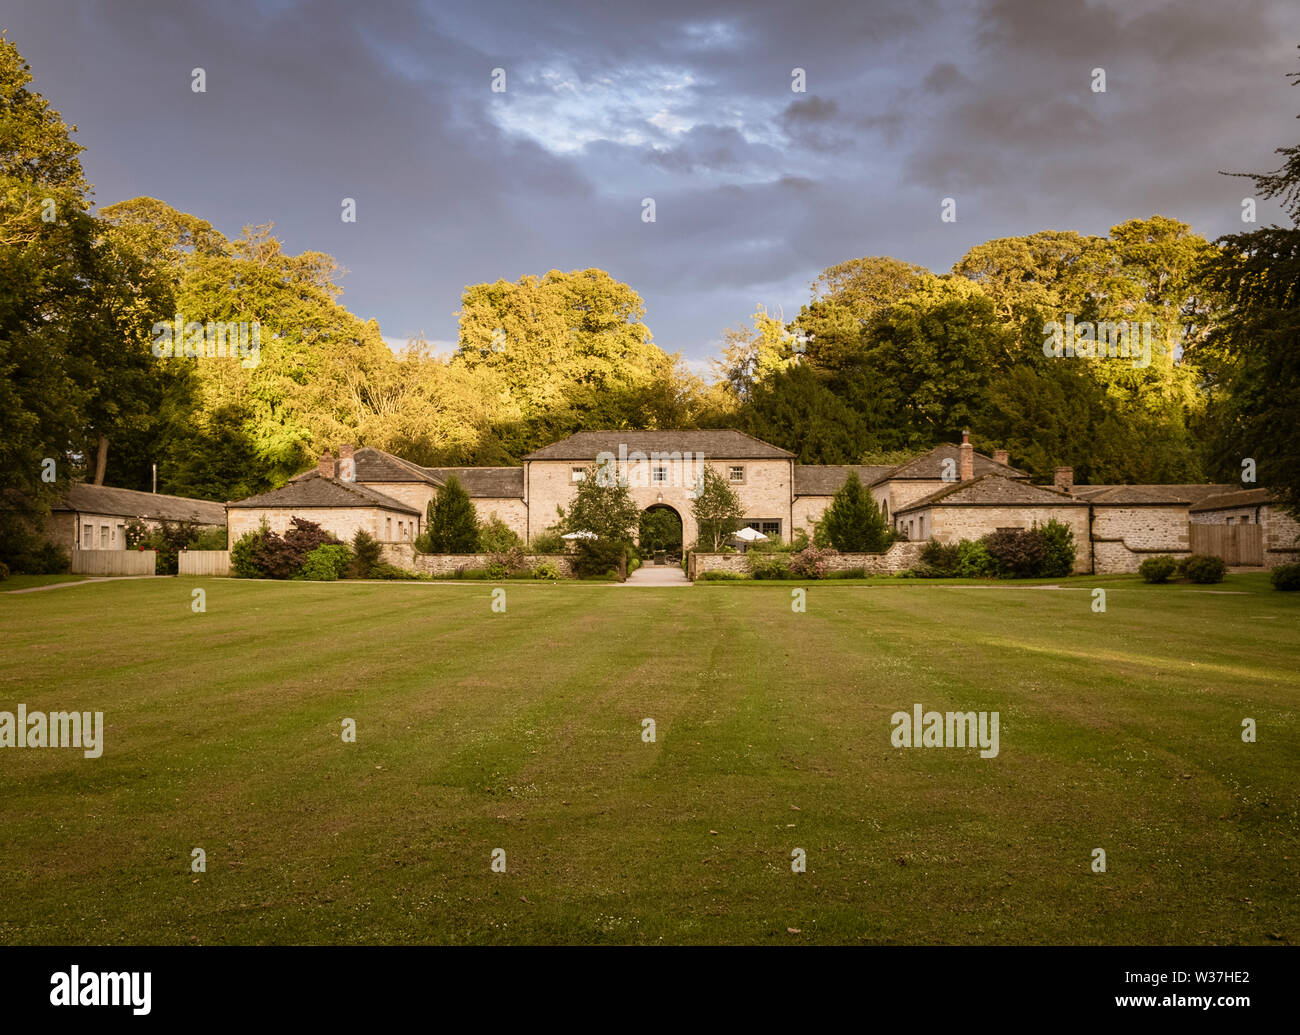 The Coach House Middleton Lodge Stately Home Now Hotel and Wedding Venue near Richmond North Yorkshire - Stock Image